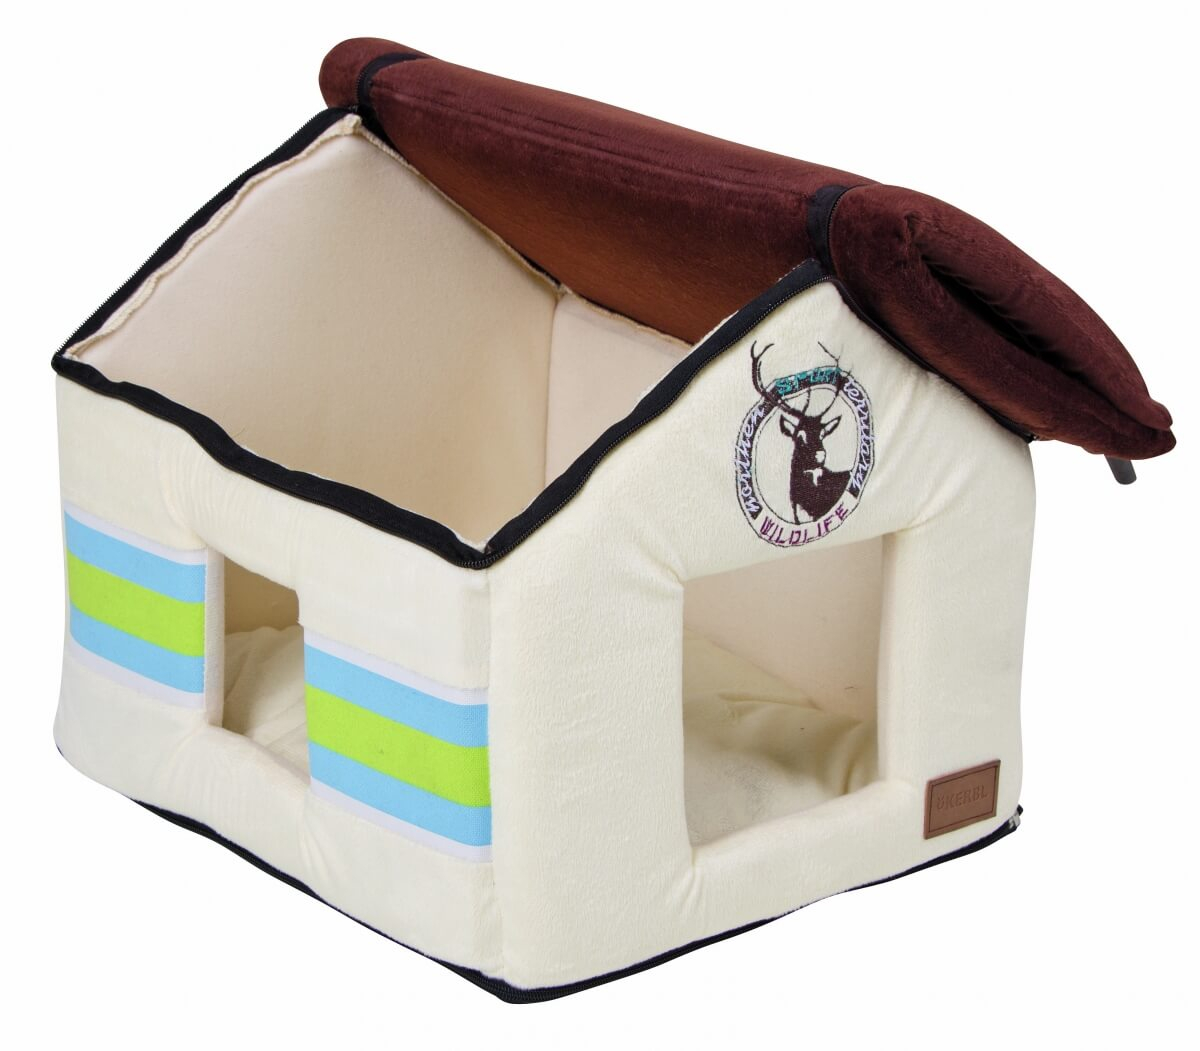 Igloo moelleux wild life pour chien et chat couchage chat for Izigloo avis